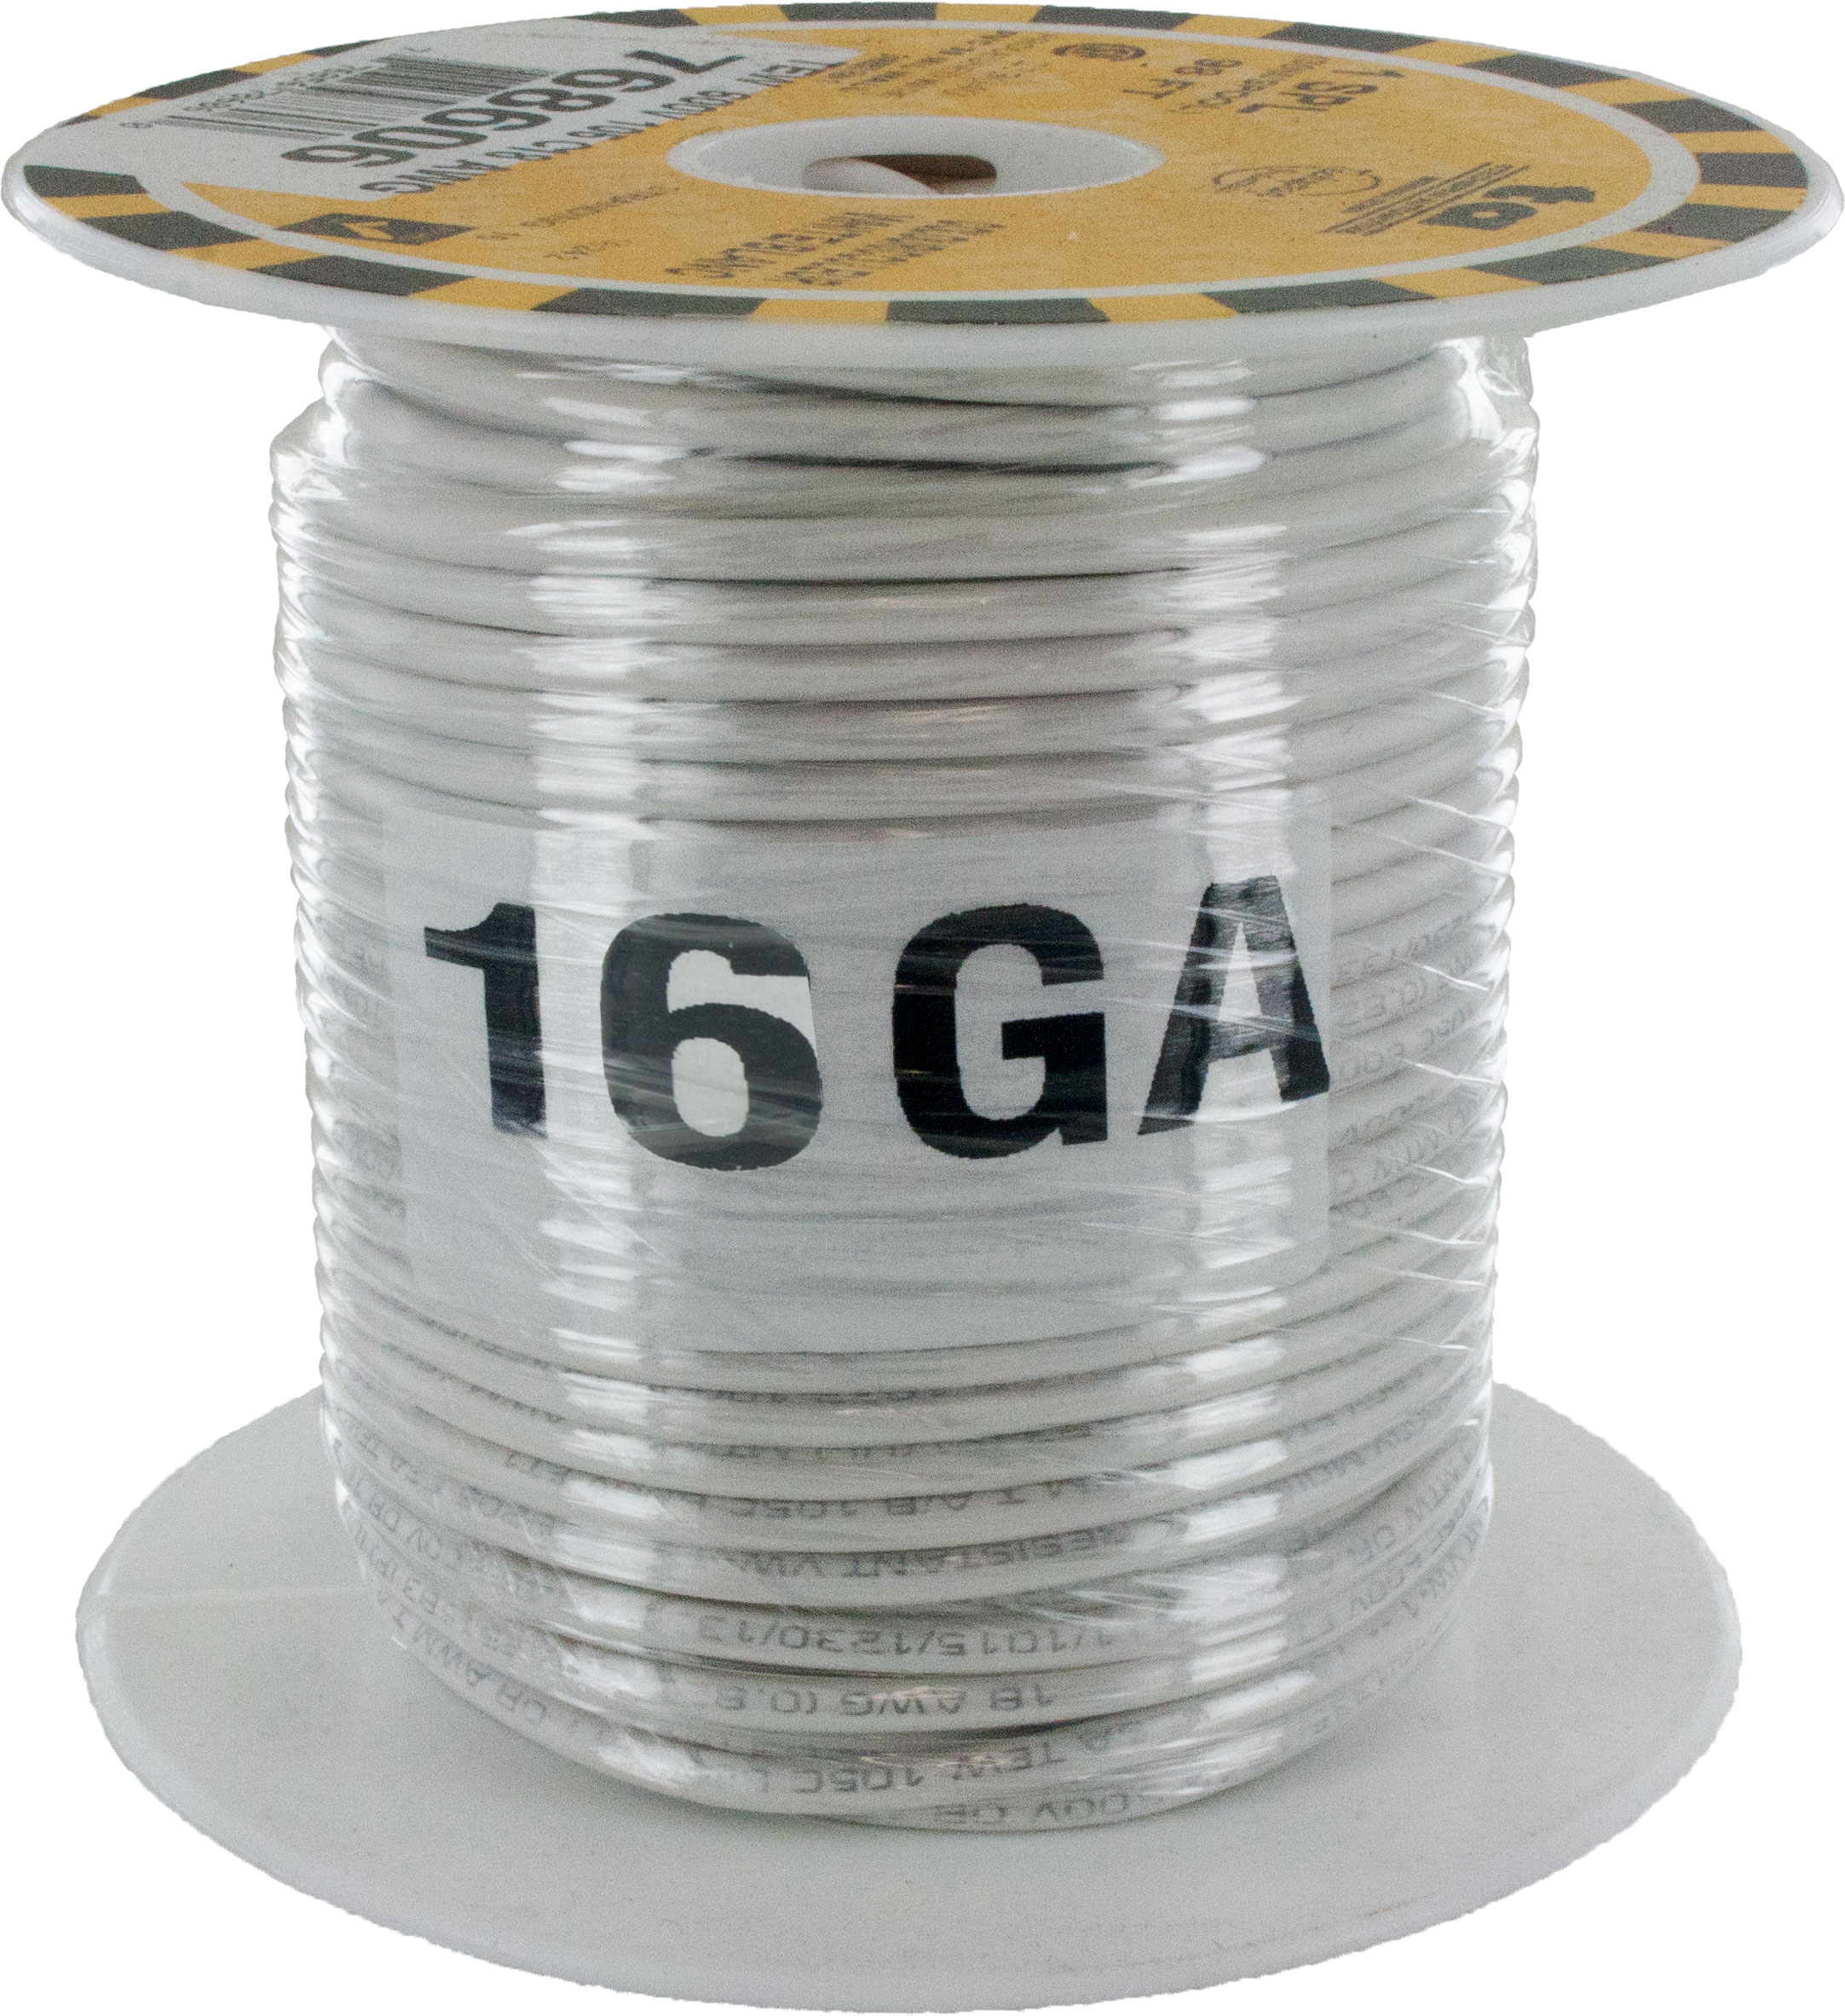 Excellent 10 Awg Stranded Wire Pictures Inspiration - The Best ...